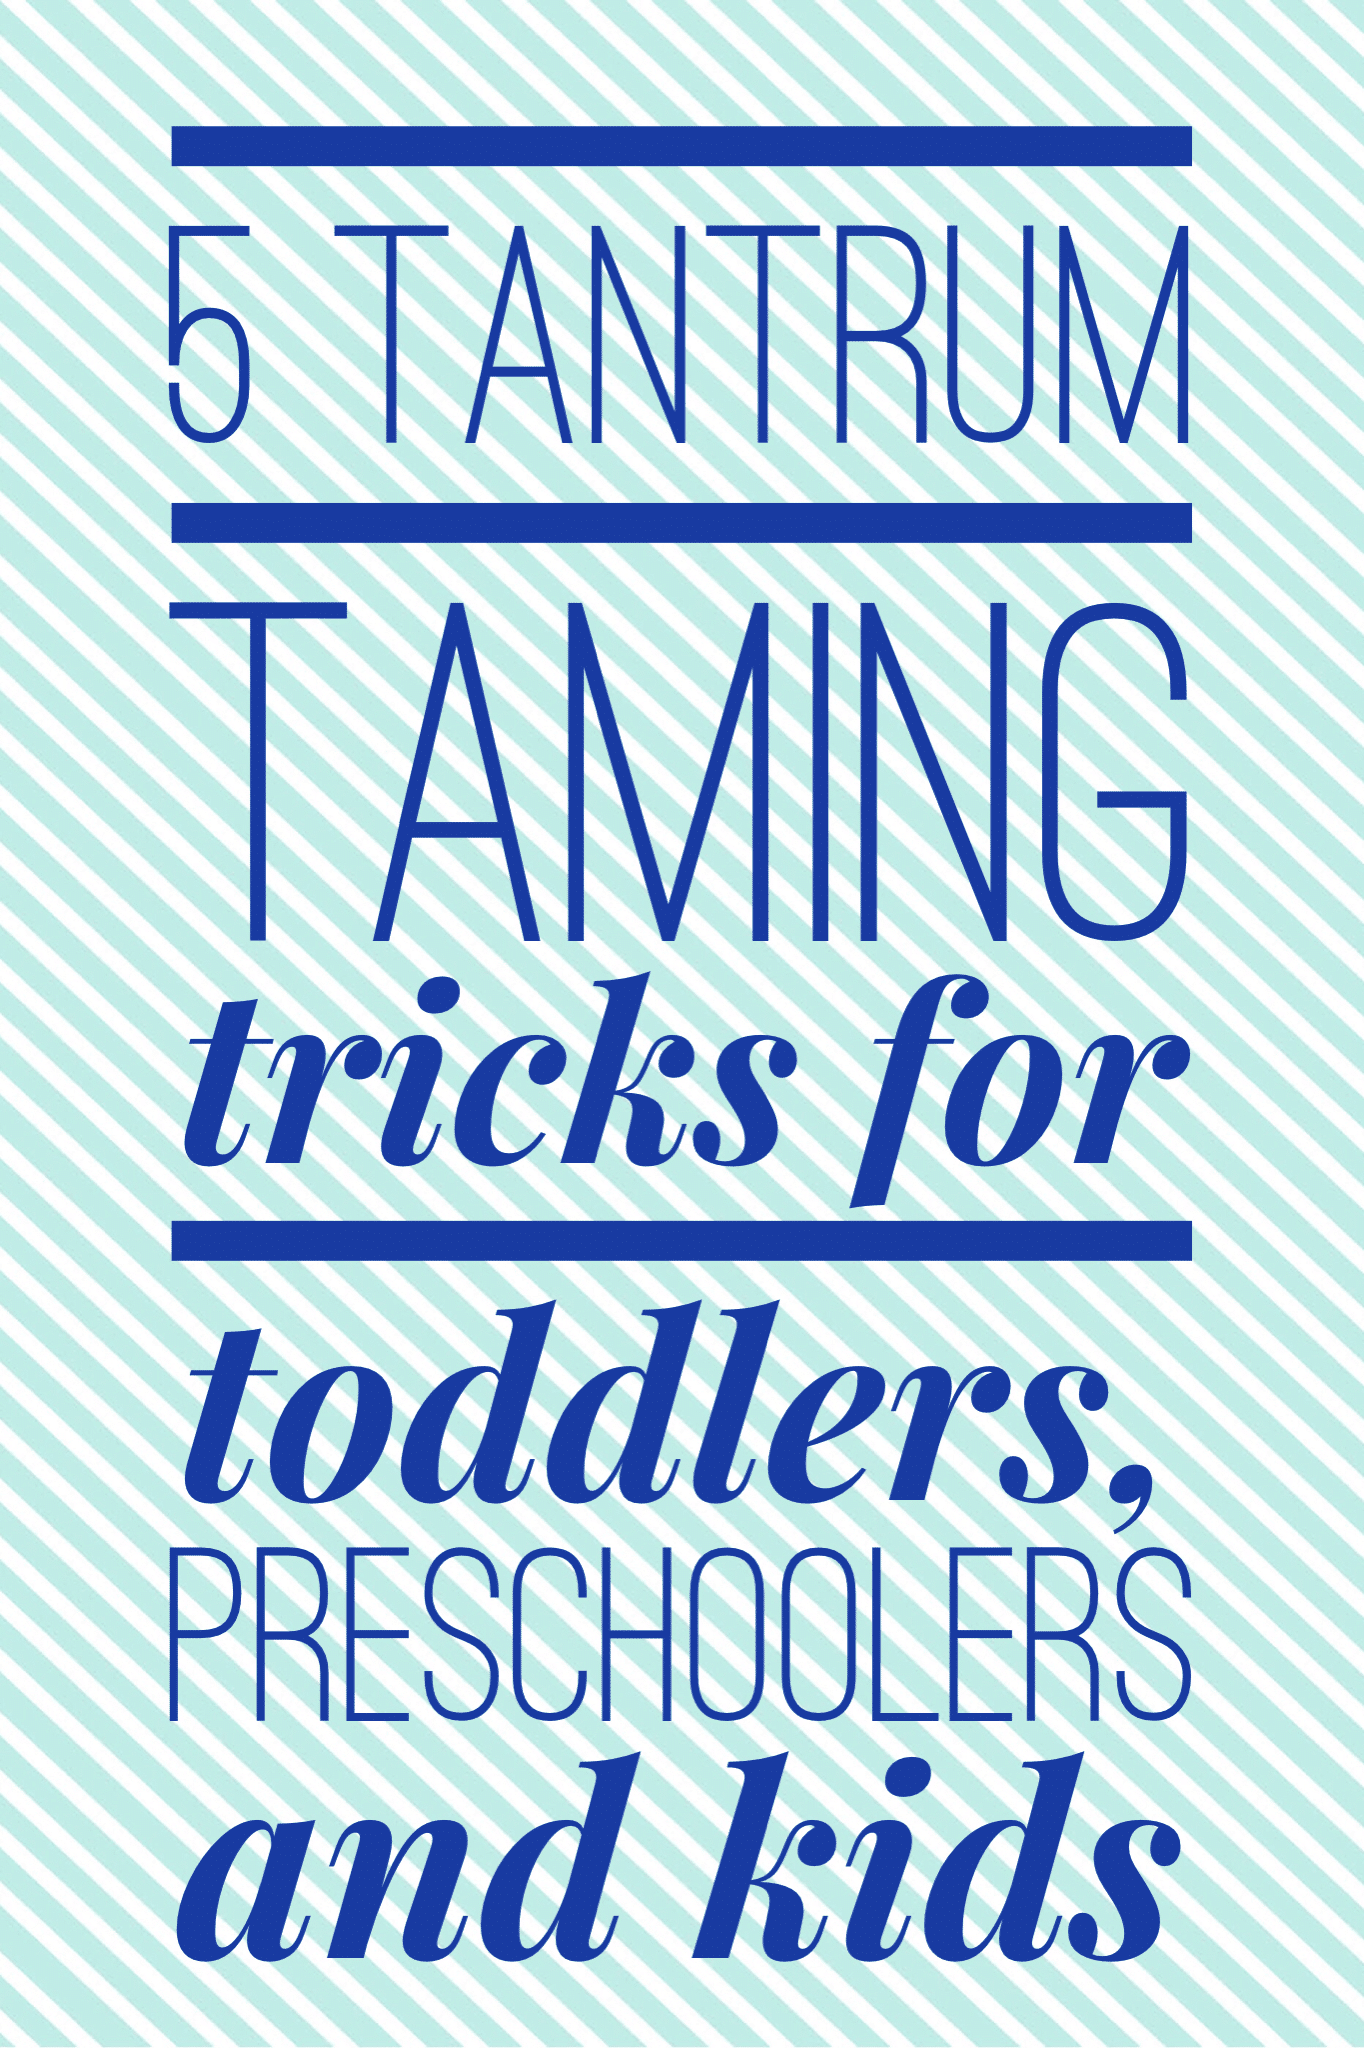 5 tantrum taming tricks for toddlers, preschoolers and kids